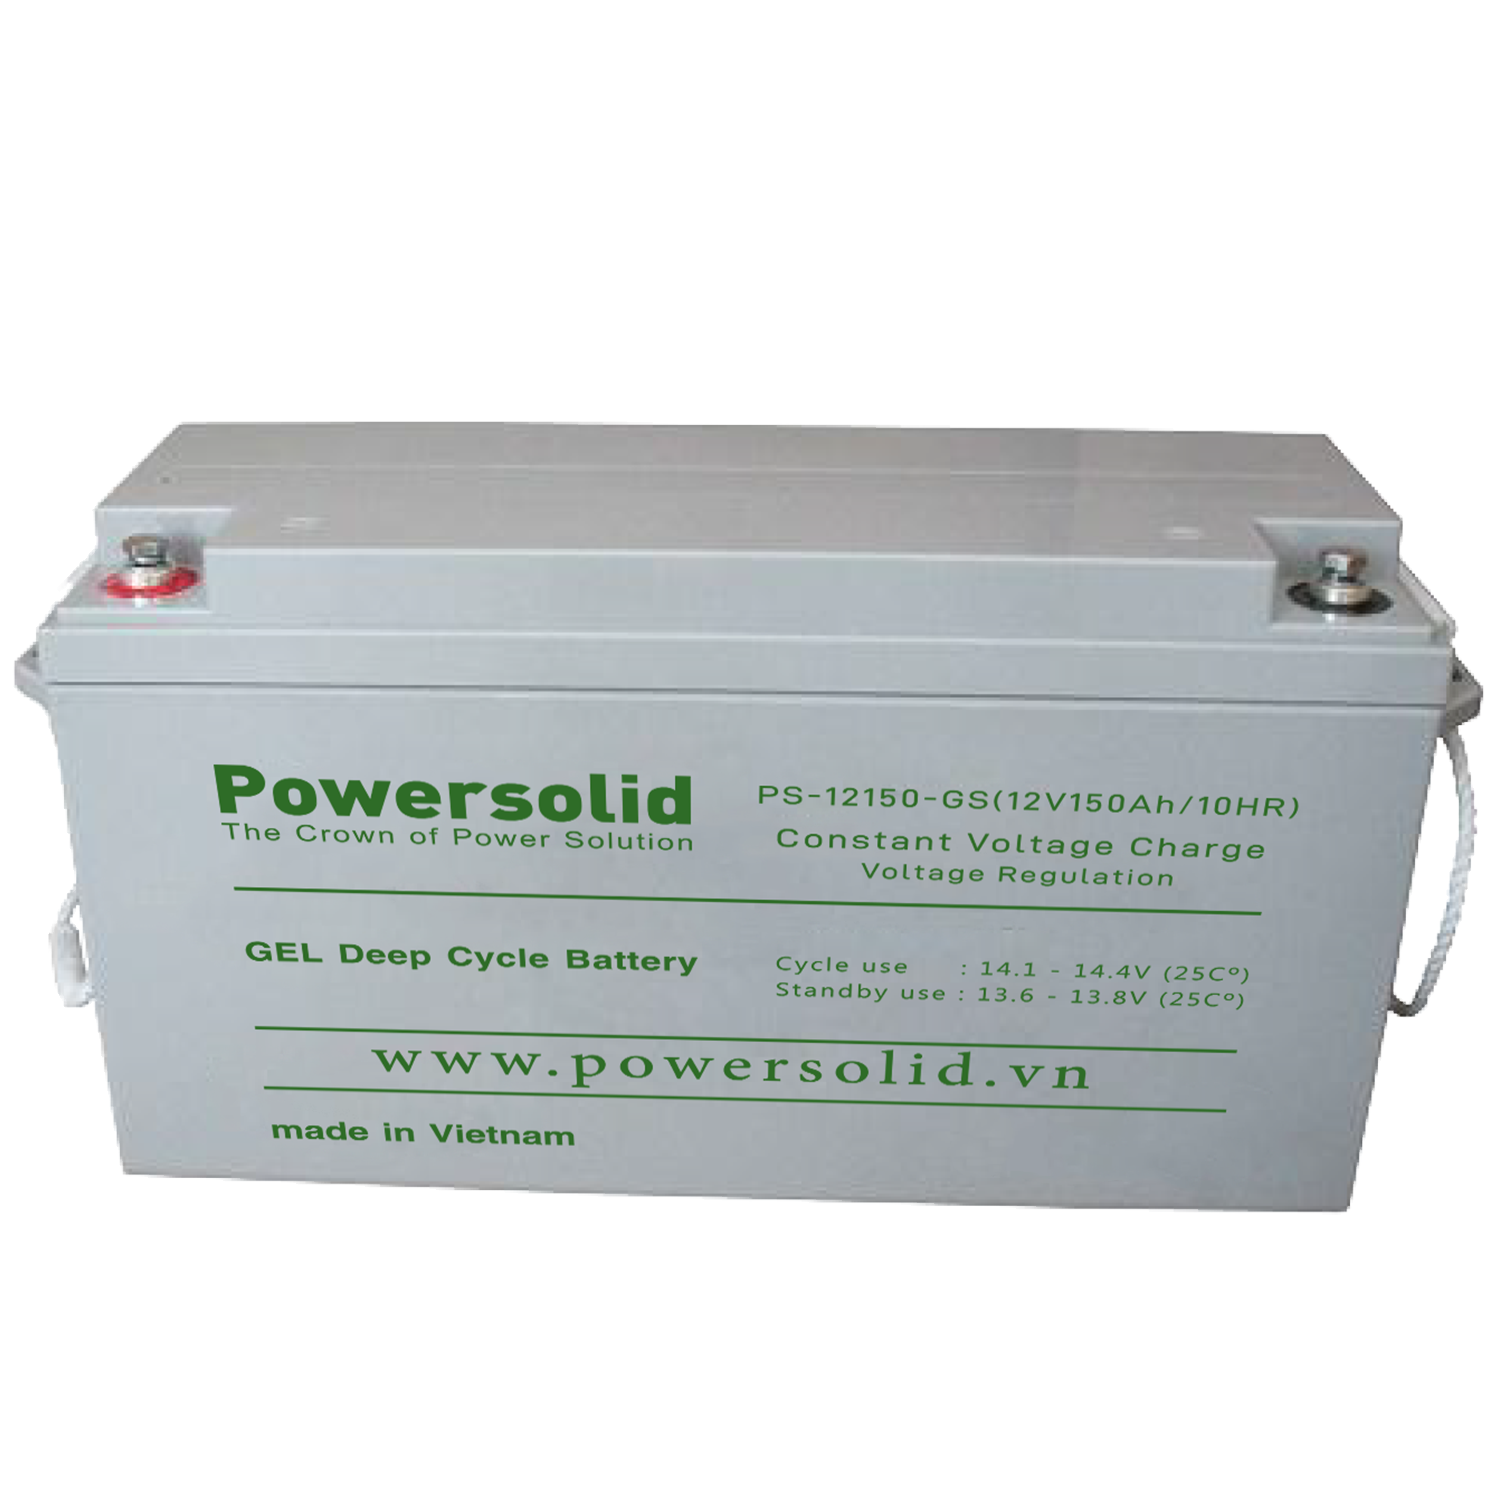 Power Solid PS-121500-GS GEL Deep Cycle Battery 12V 150Ah